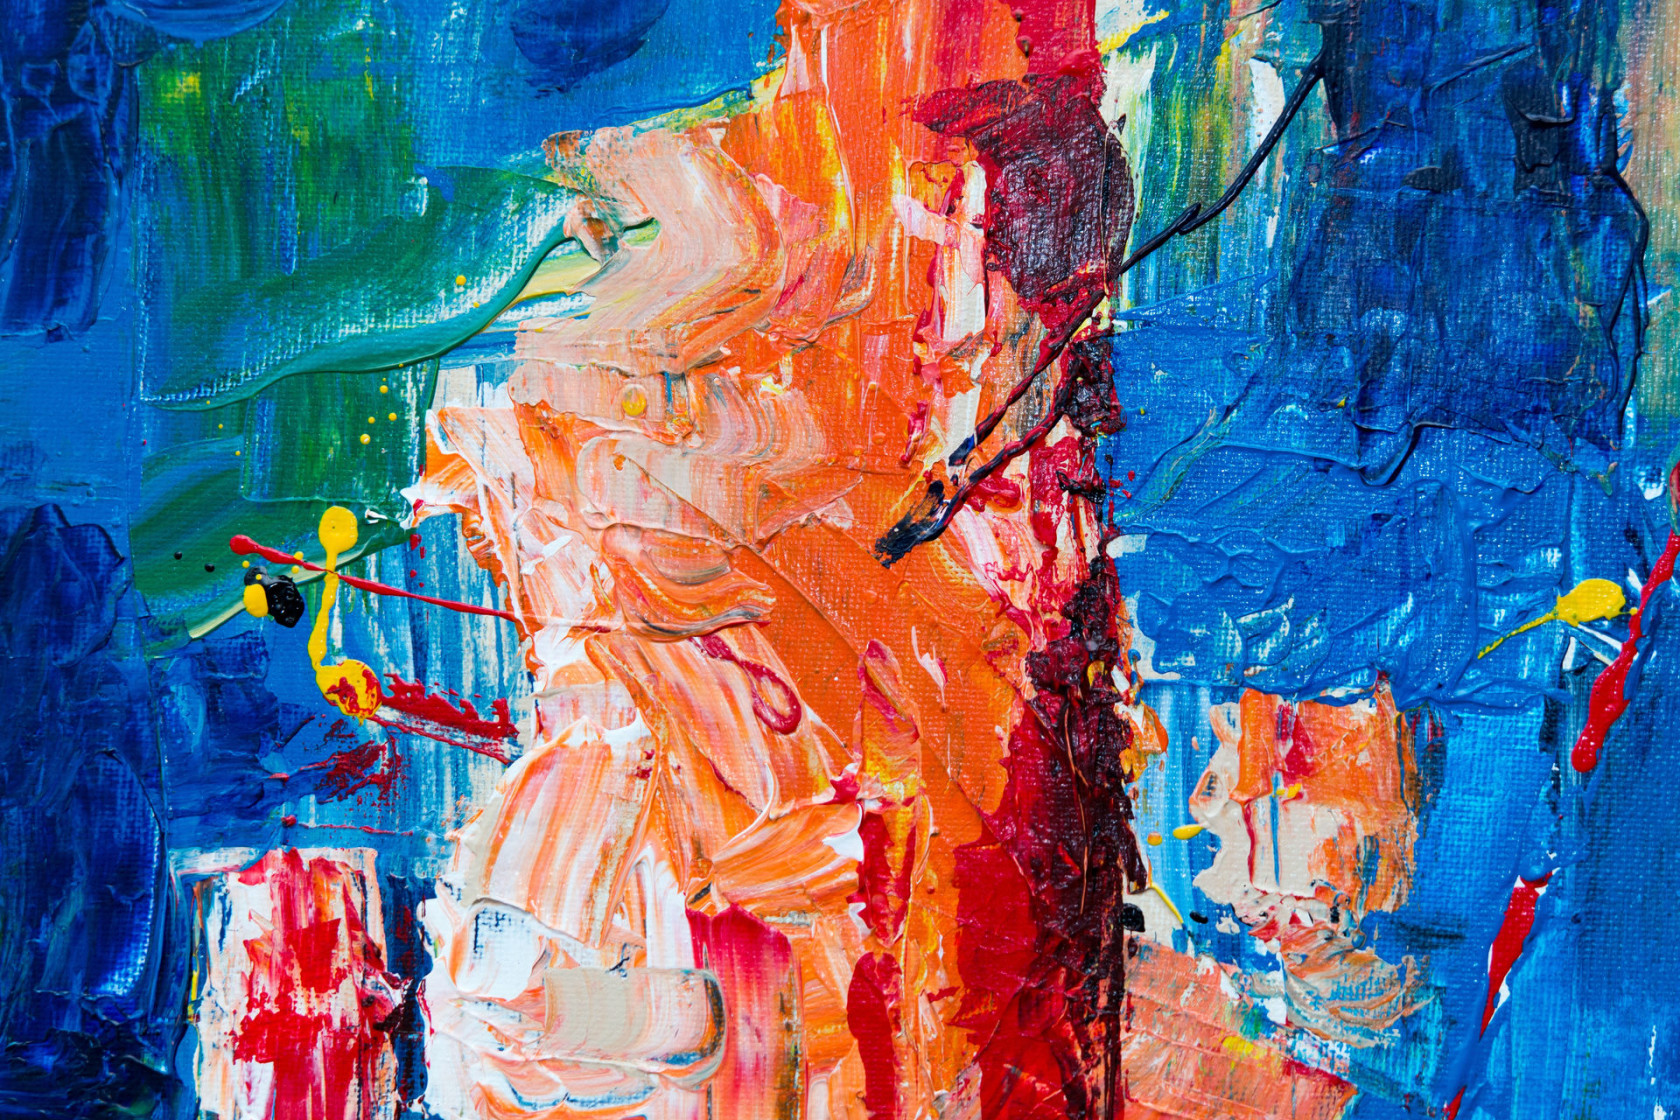 abstract-abstract-expressionism-abstract-painting-1189626.jpg